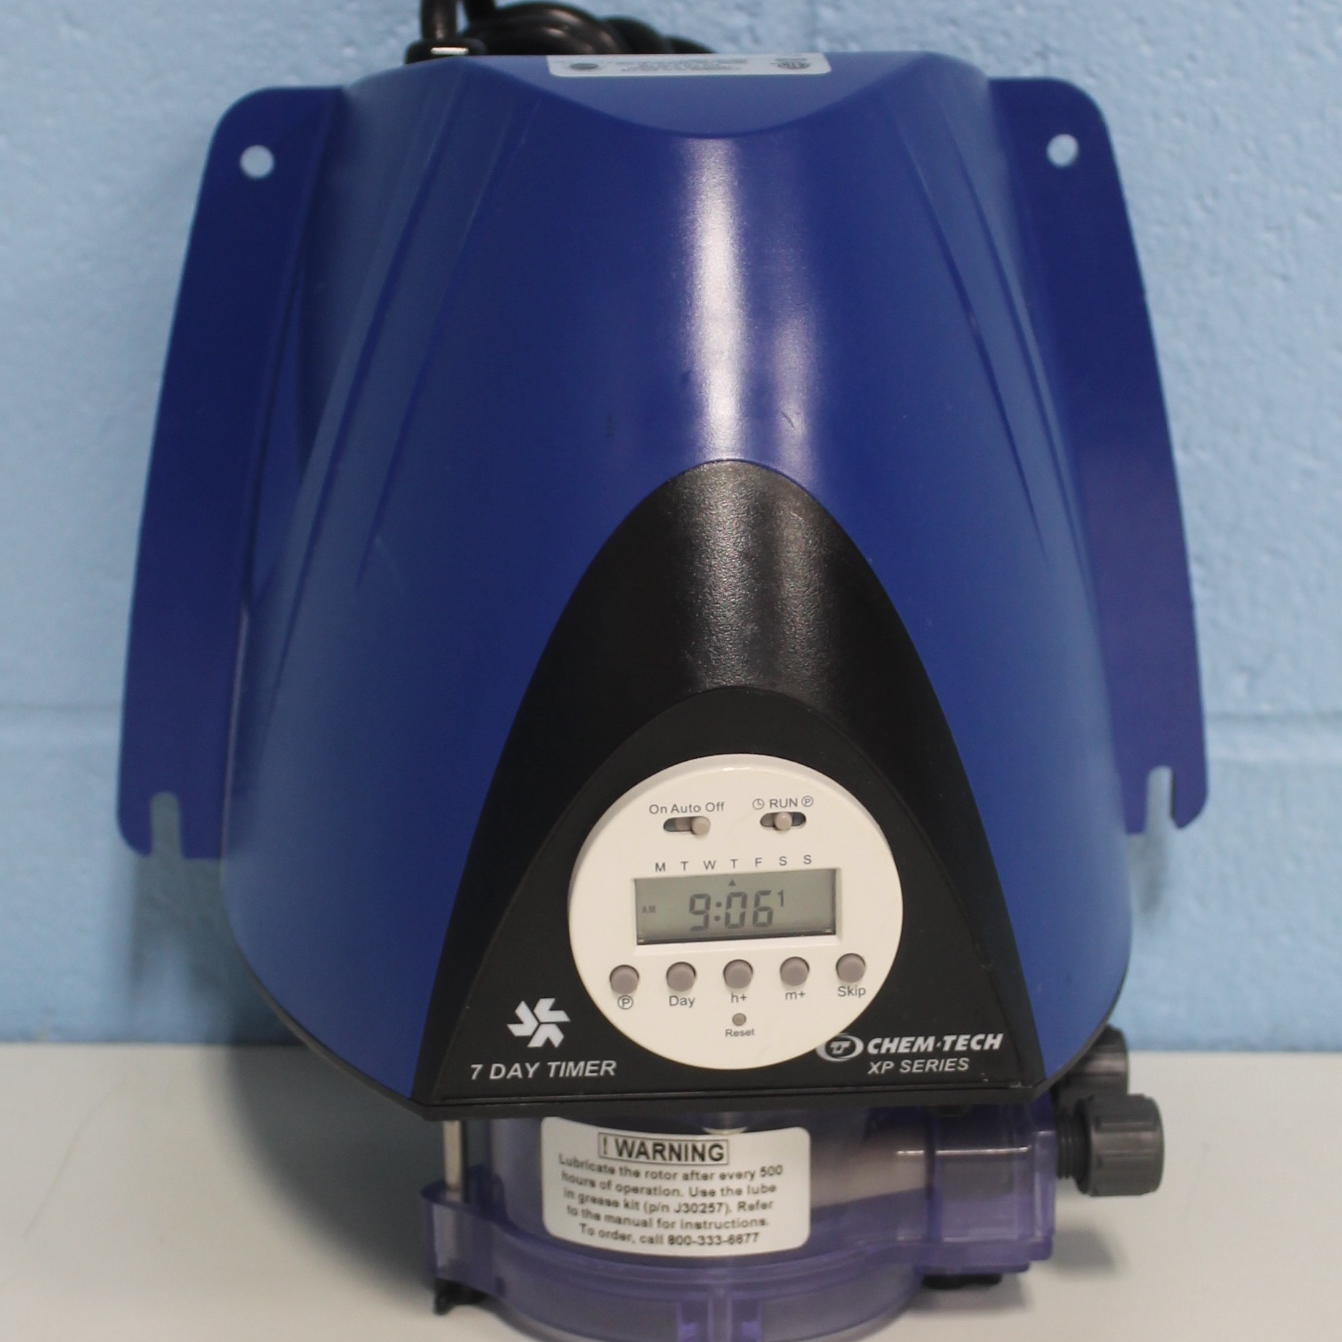 Chem-Tech XP Series Peristaltic Metering Pump Image